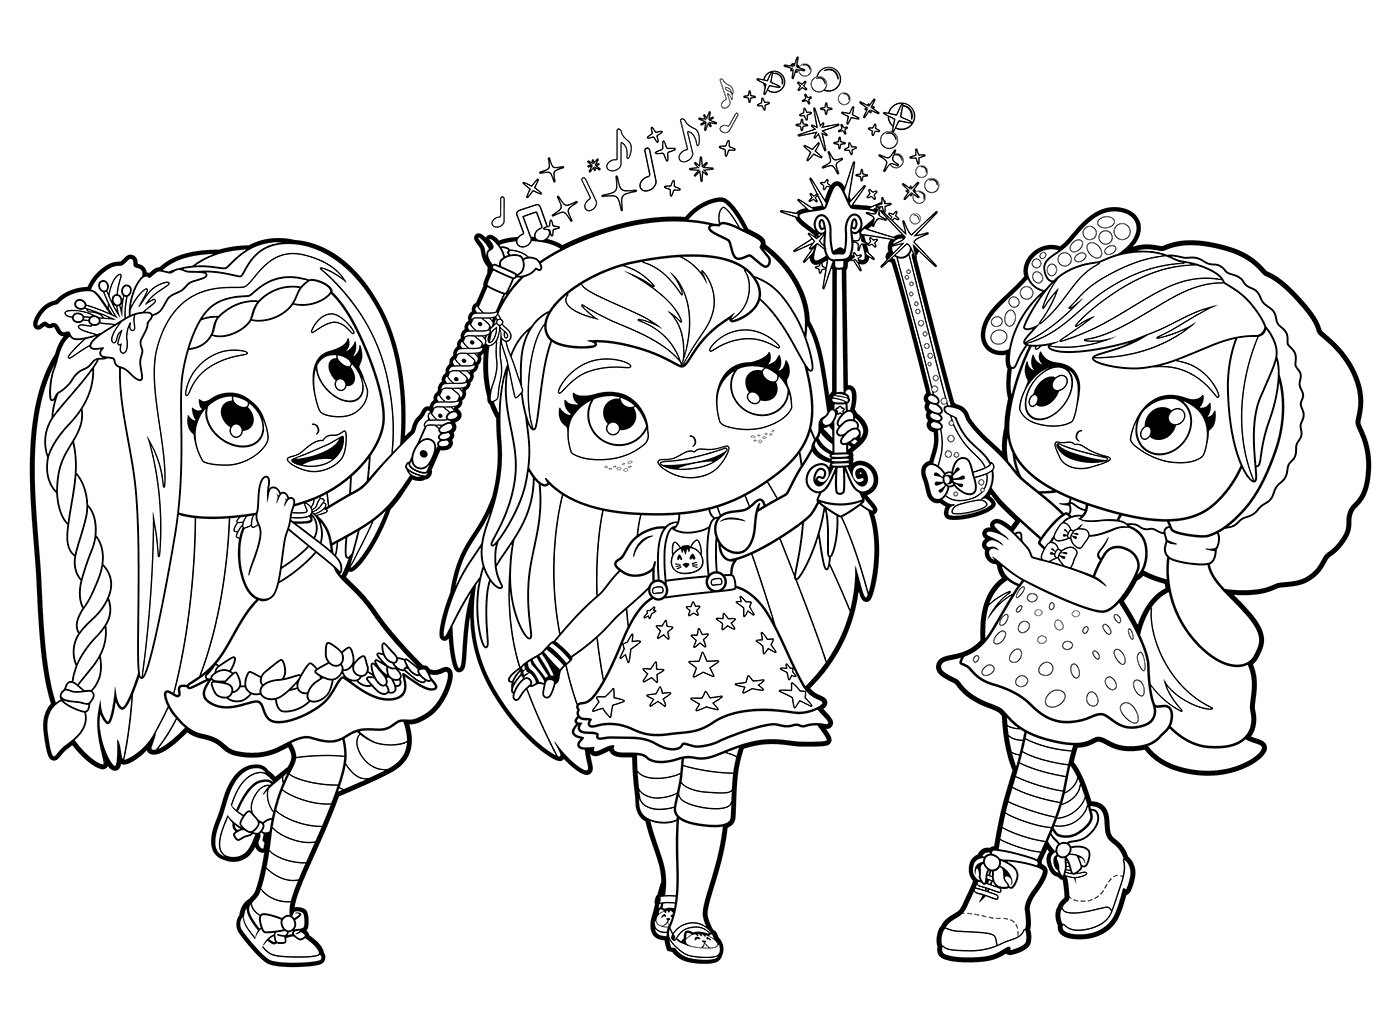 coloring little charmers little charmers coloring pages getcoloringpagescom little coloring charmers